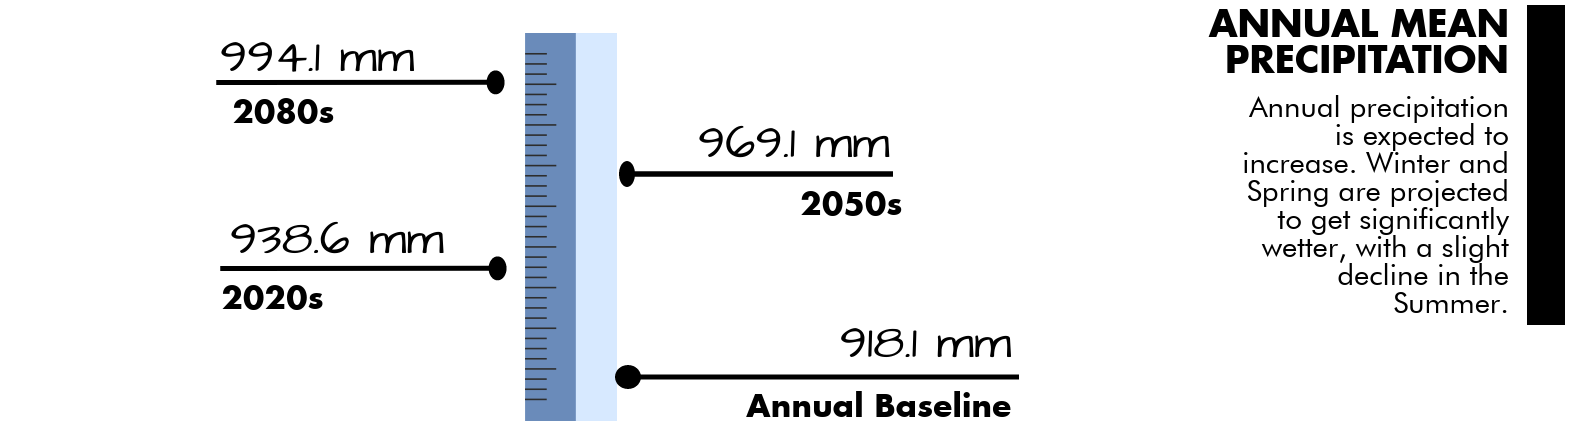 Annual baseline precipitation is 918 milimetres, by the 2050s precipitation estimated are 969 milimetres.